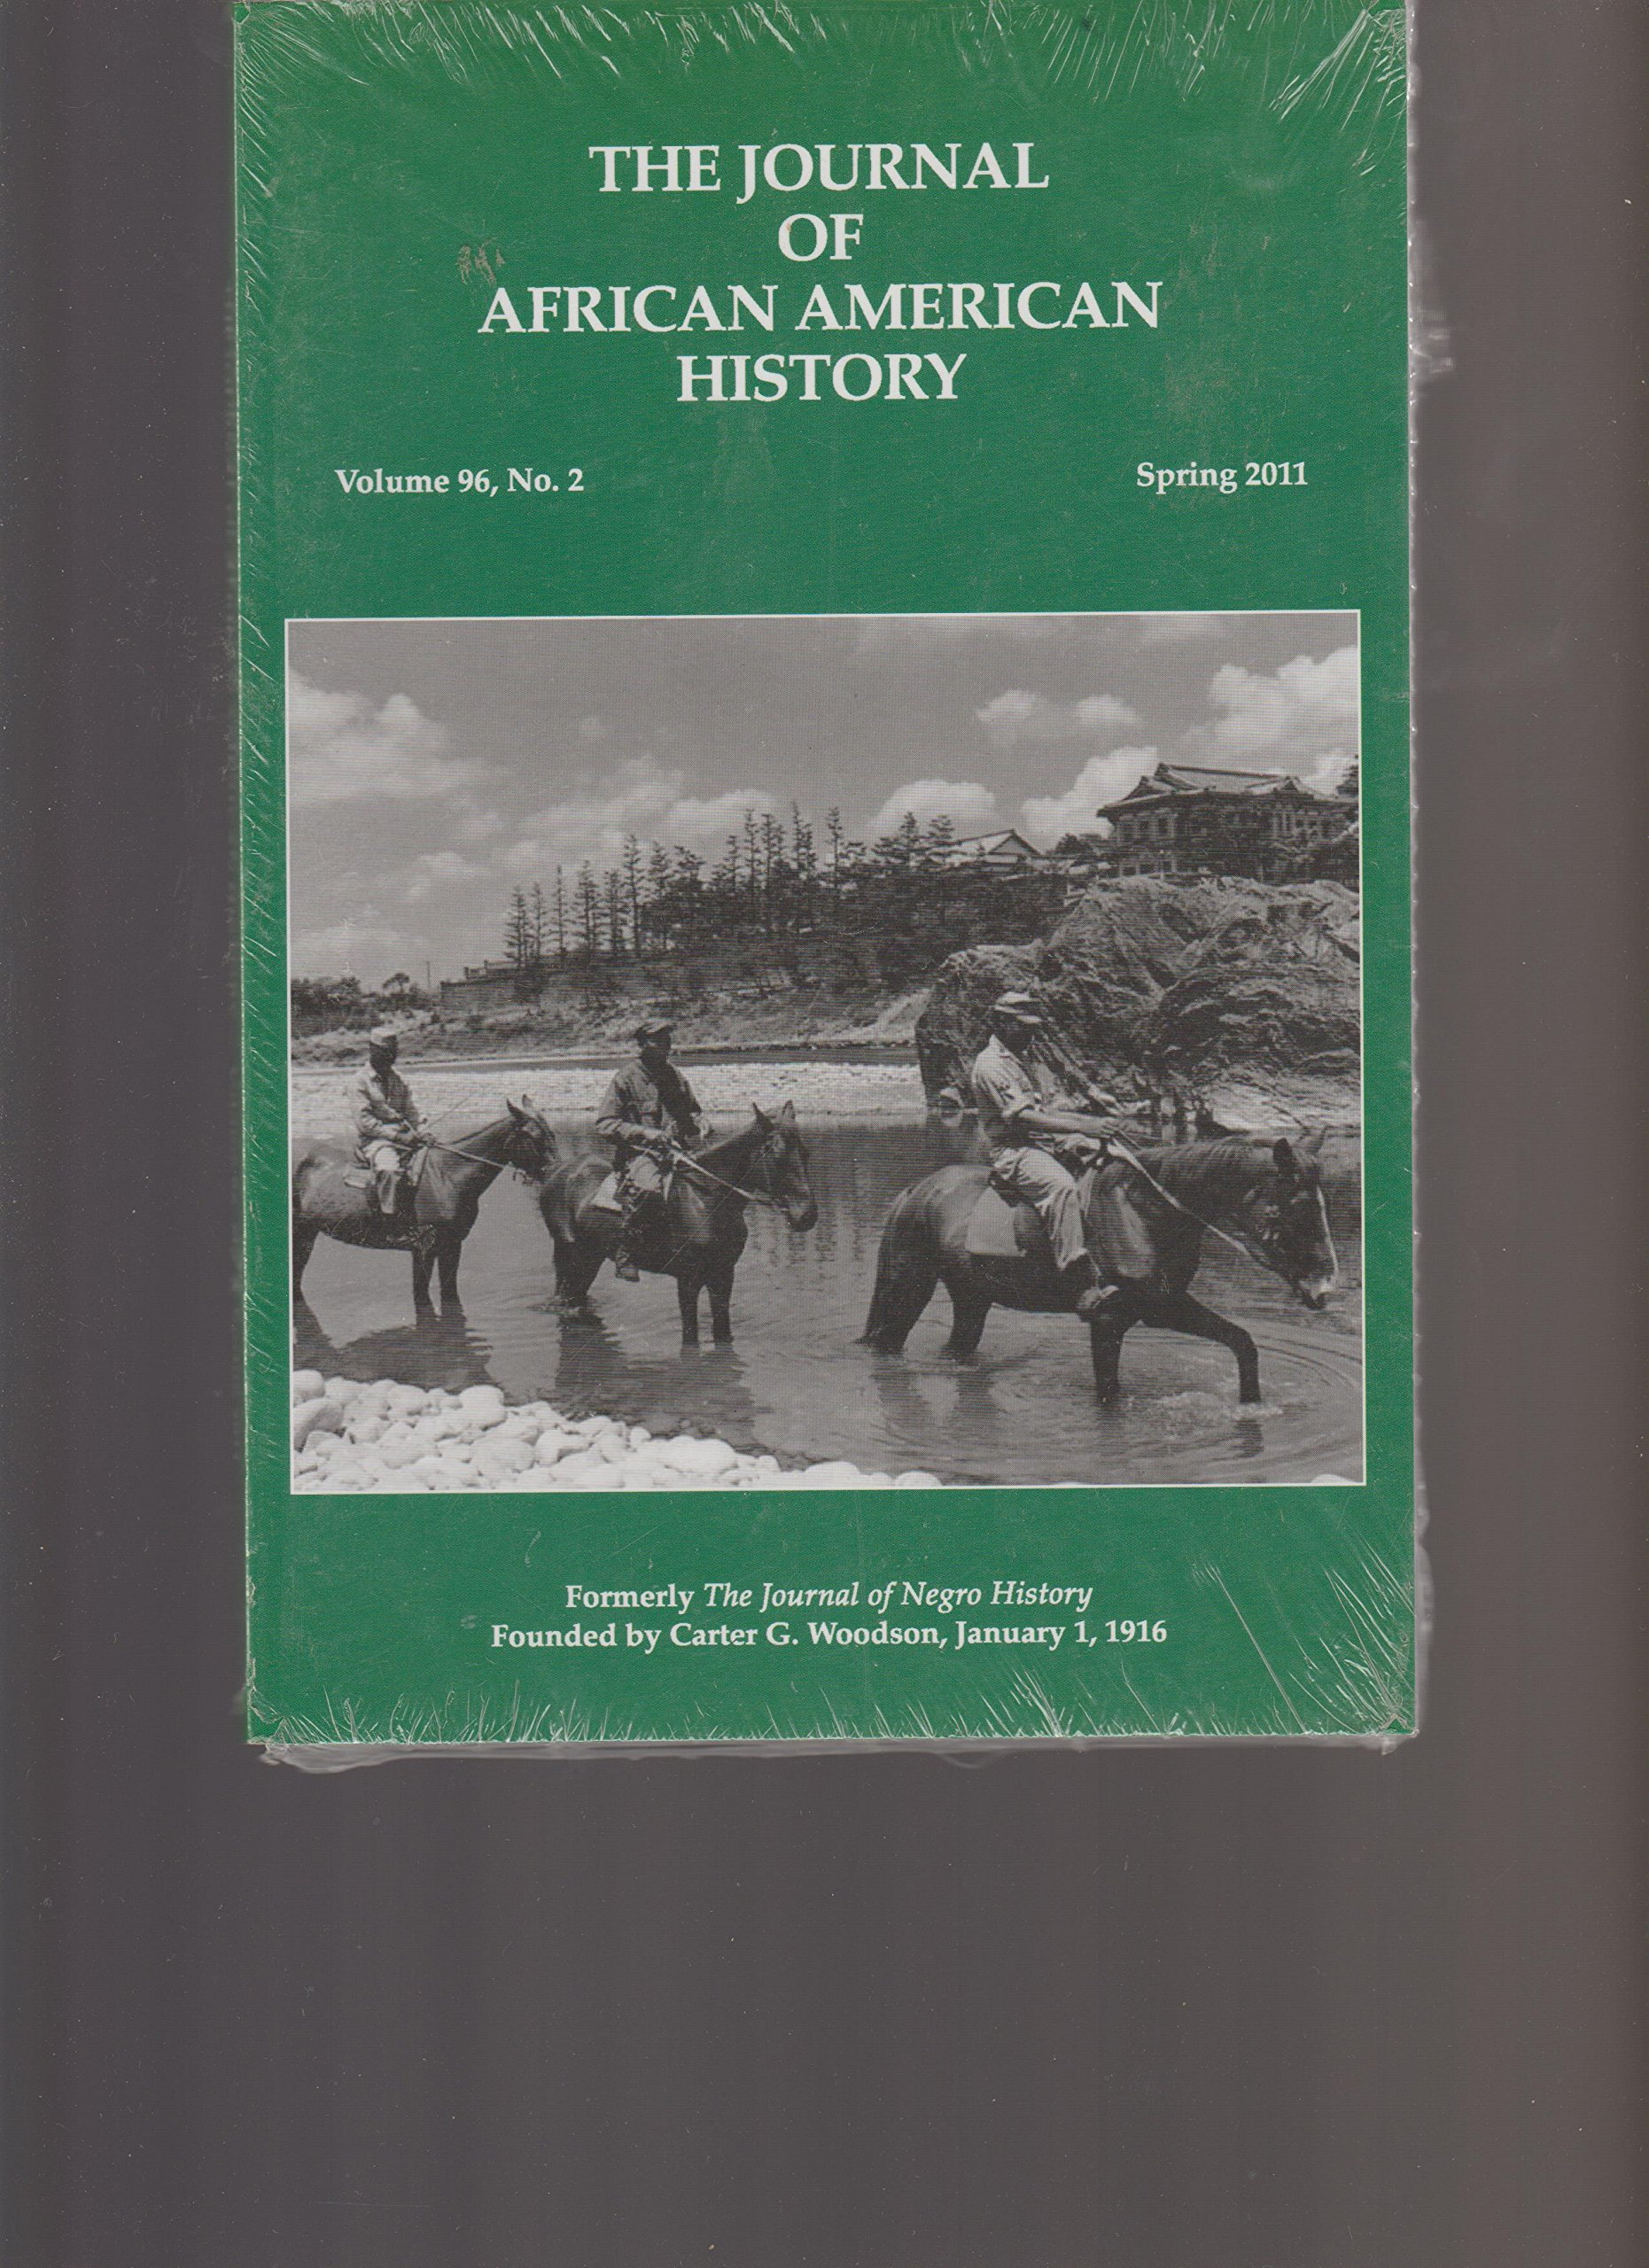 THE JOURNAL OF AFRICAN AMERICAN HISTORY, SPRING 2011 PDF